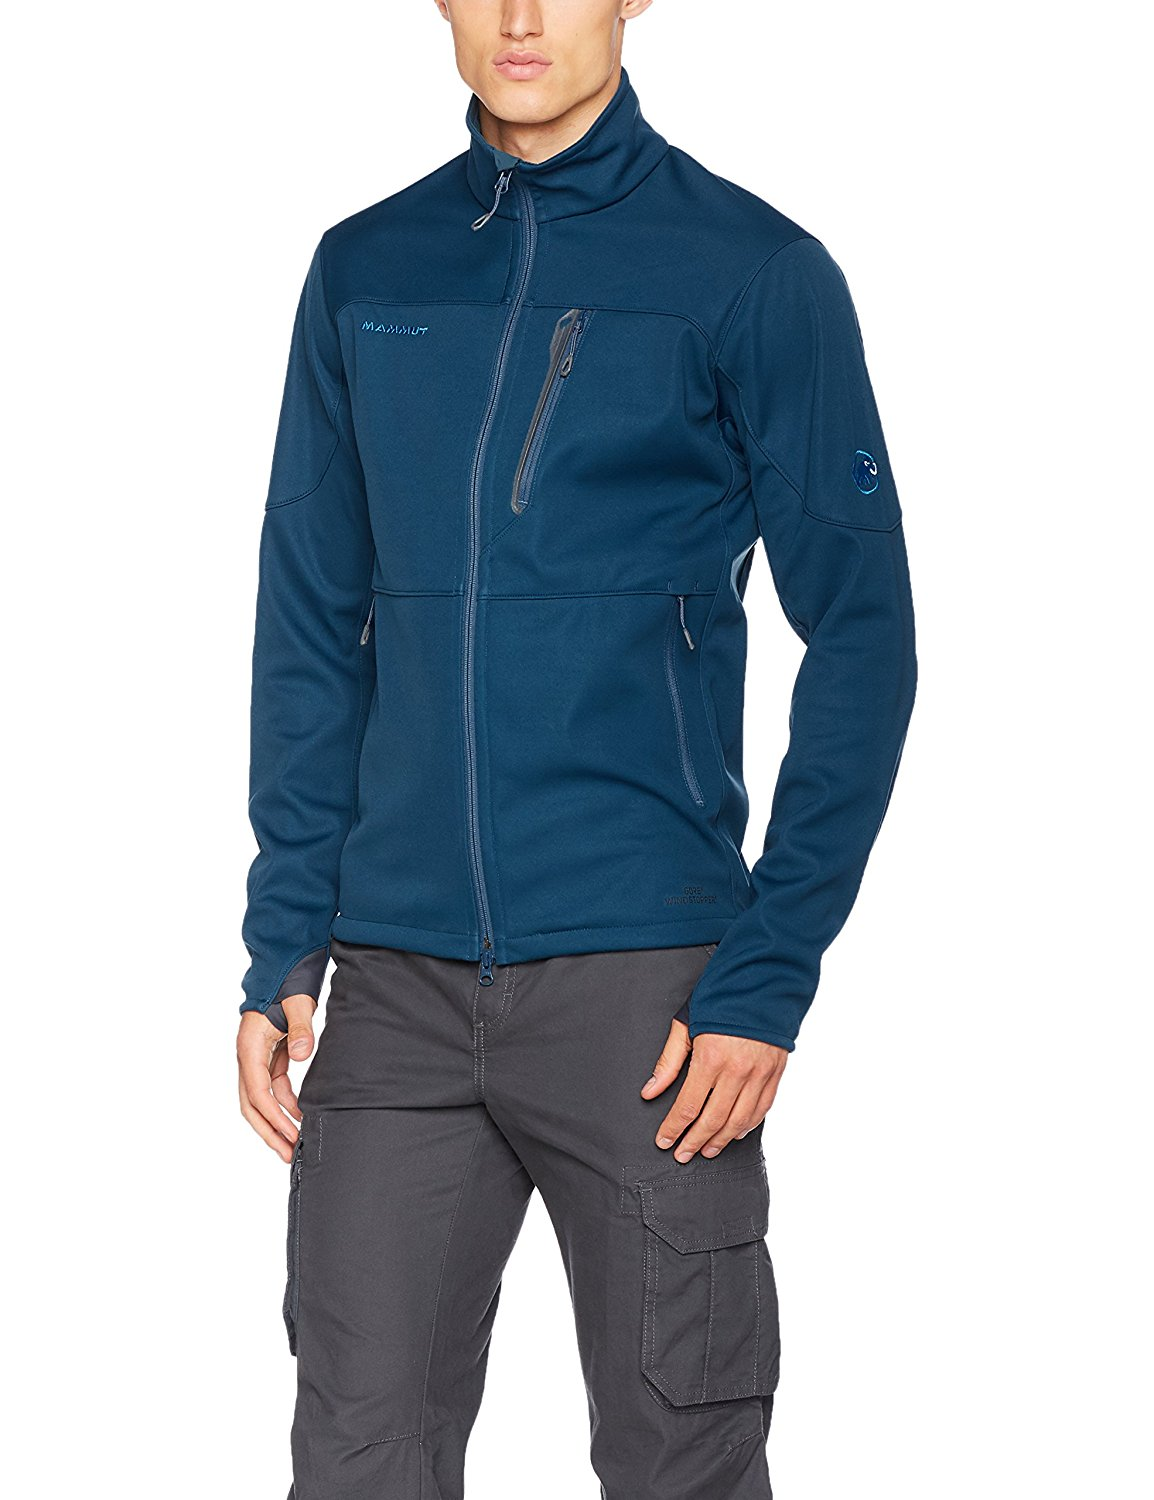 Mammut Softshelljacke amazon